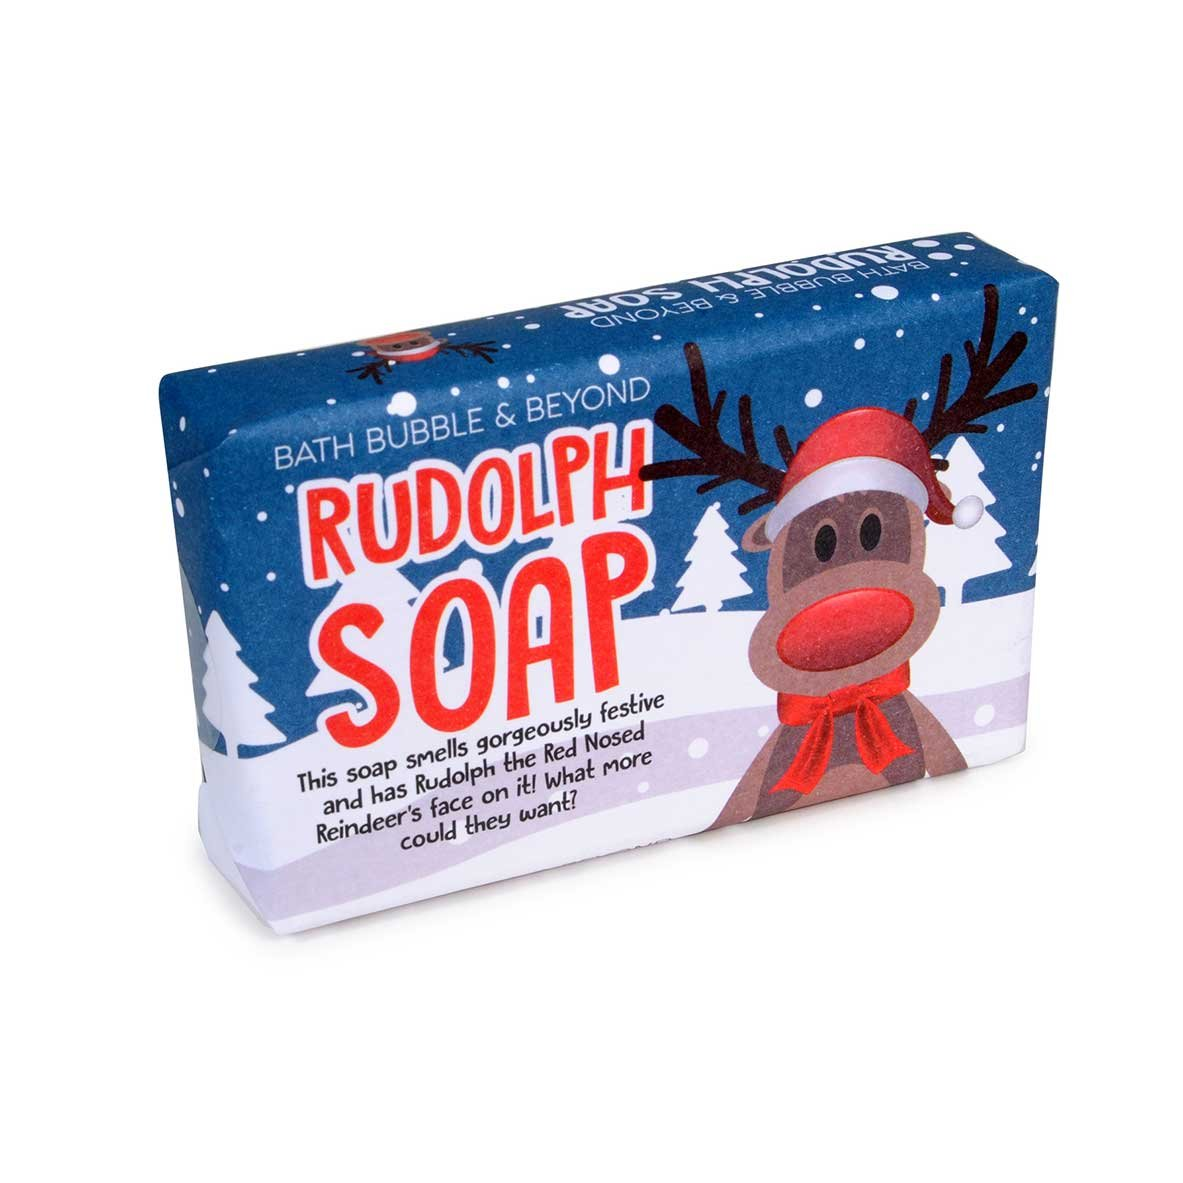 Rudolph The Red Nose Reindeer Christmas Hand Soap, Fragrance Cinnamon and Orange Bath Bubble and Beyond